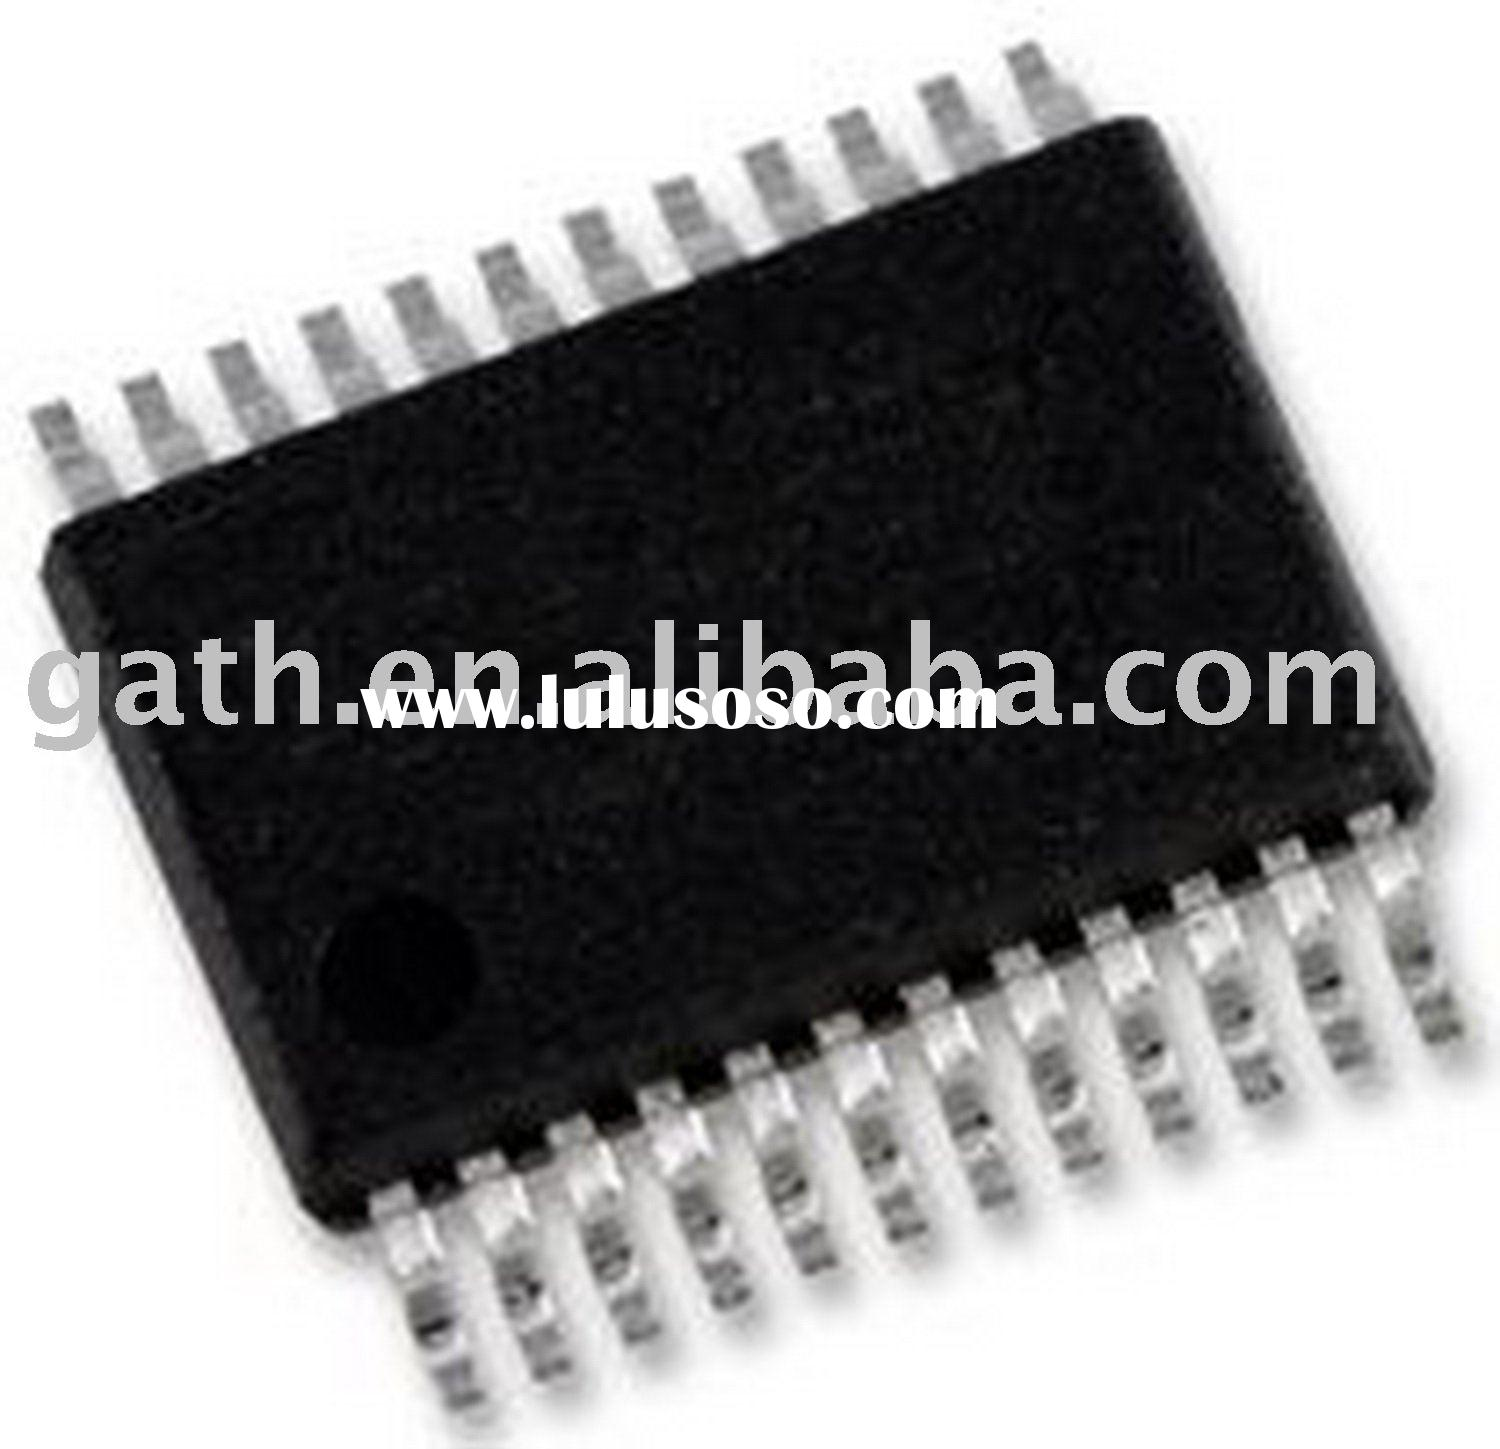 TB6575FNG-BRUSHLESS DC MOTOR DRIVER IC, 5.5V 0.2MA